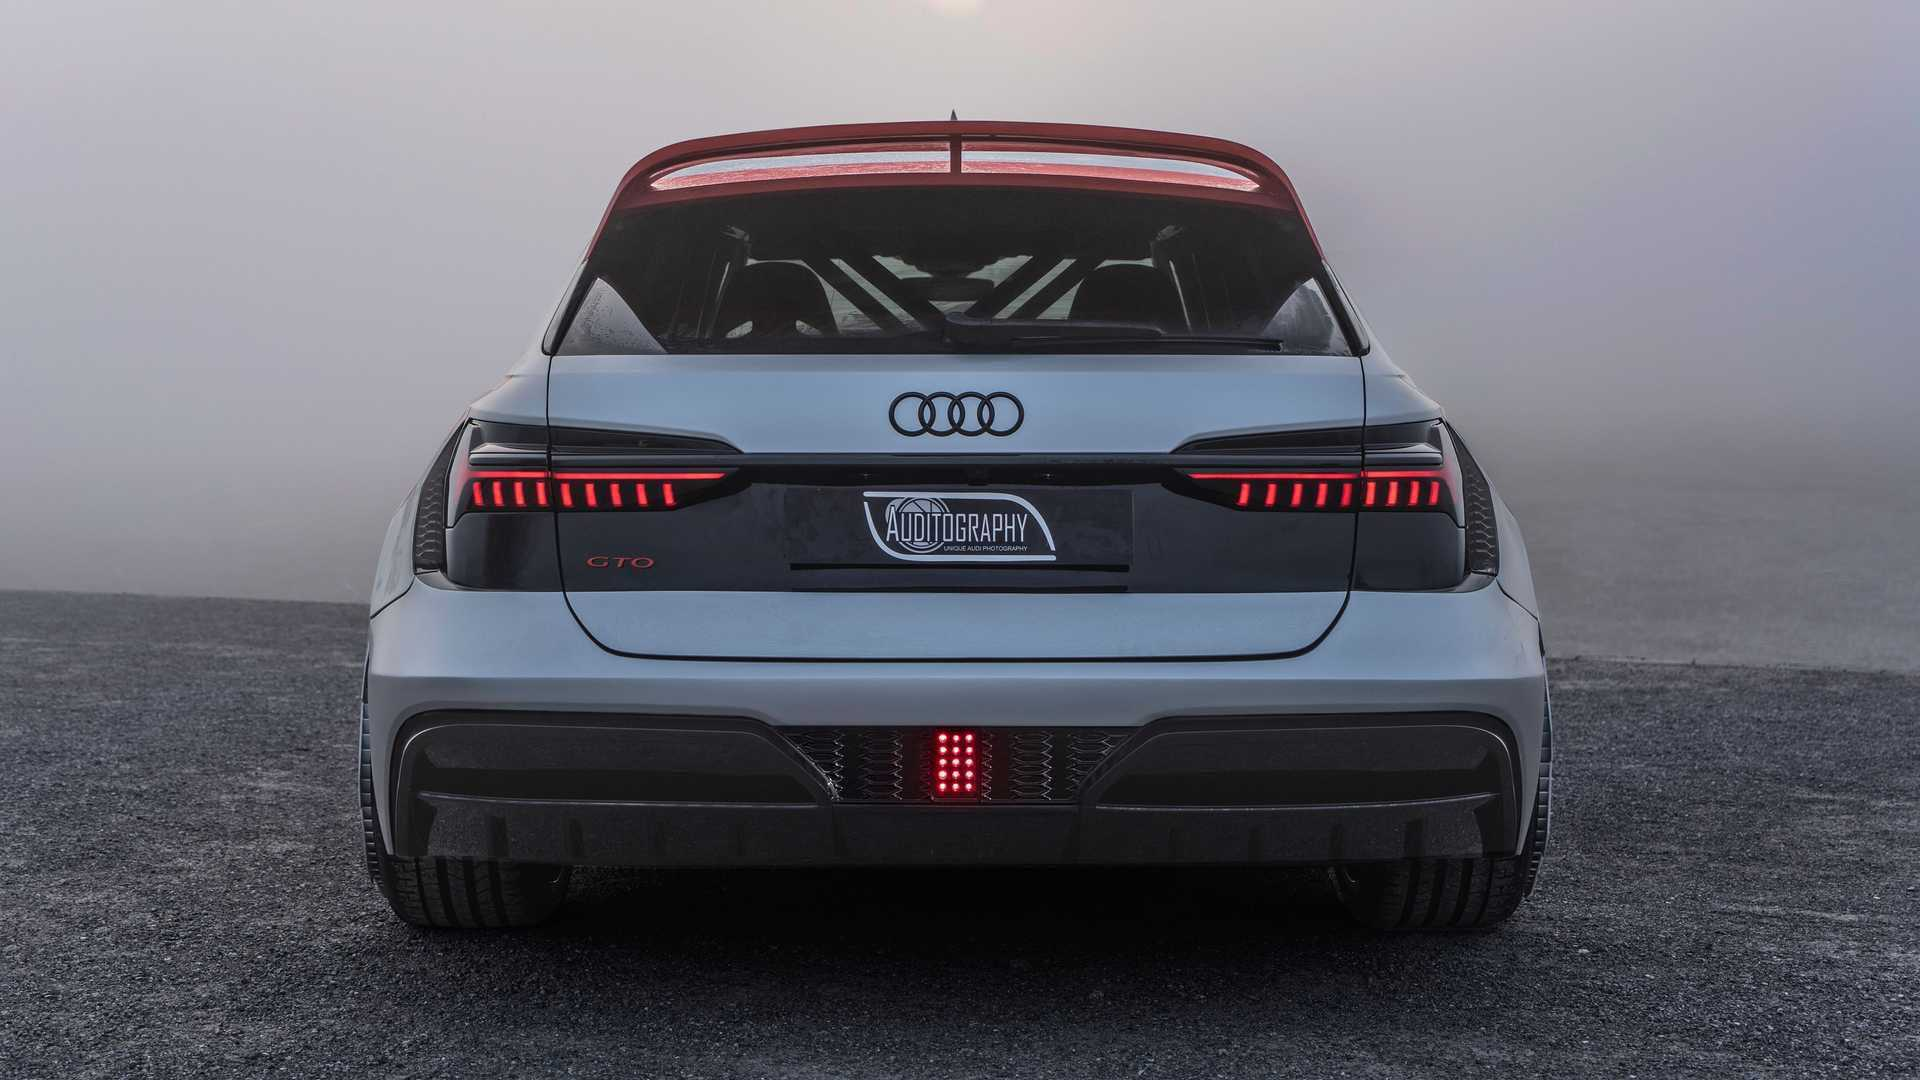 Audi_RS6_GTO_by_Auditography-0006